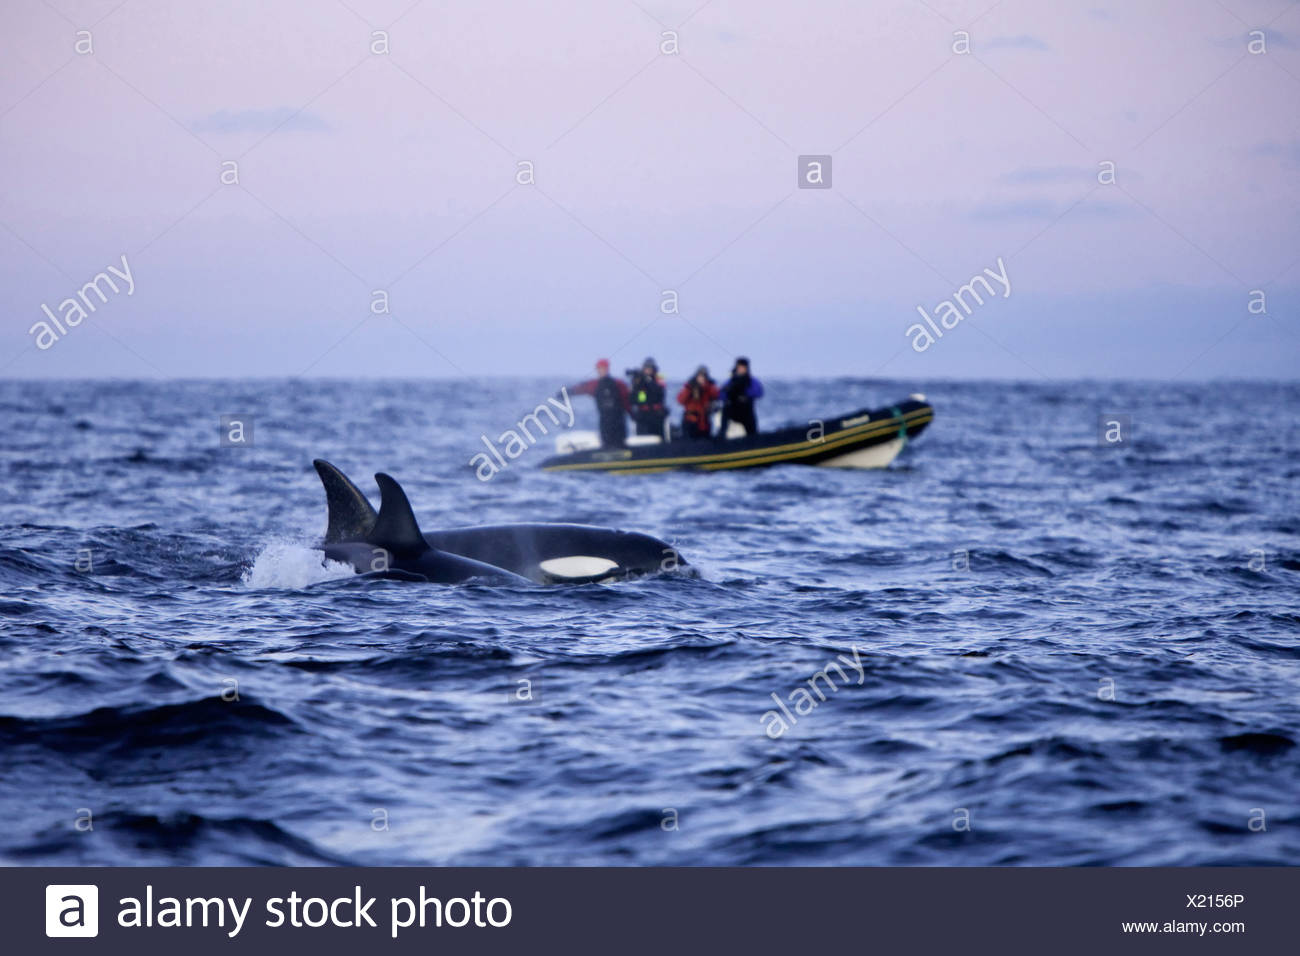 Whale watching Killer Whale Orca, Orcinus orca, Atlantic Ocean, Norway - Stock Image